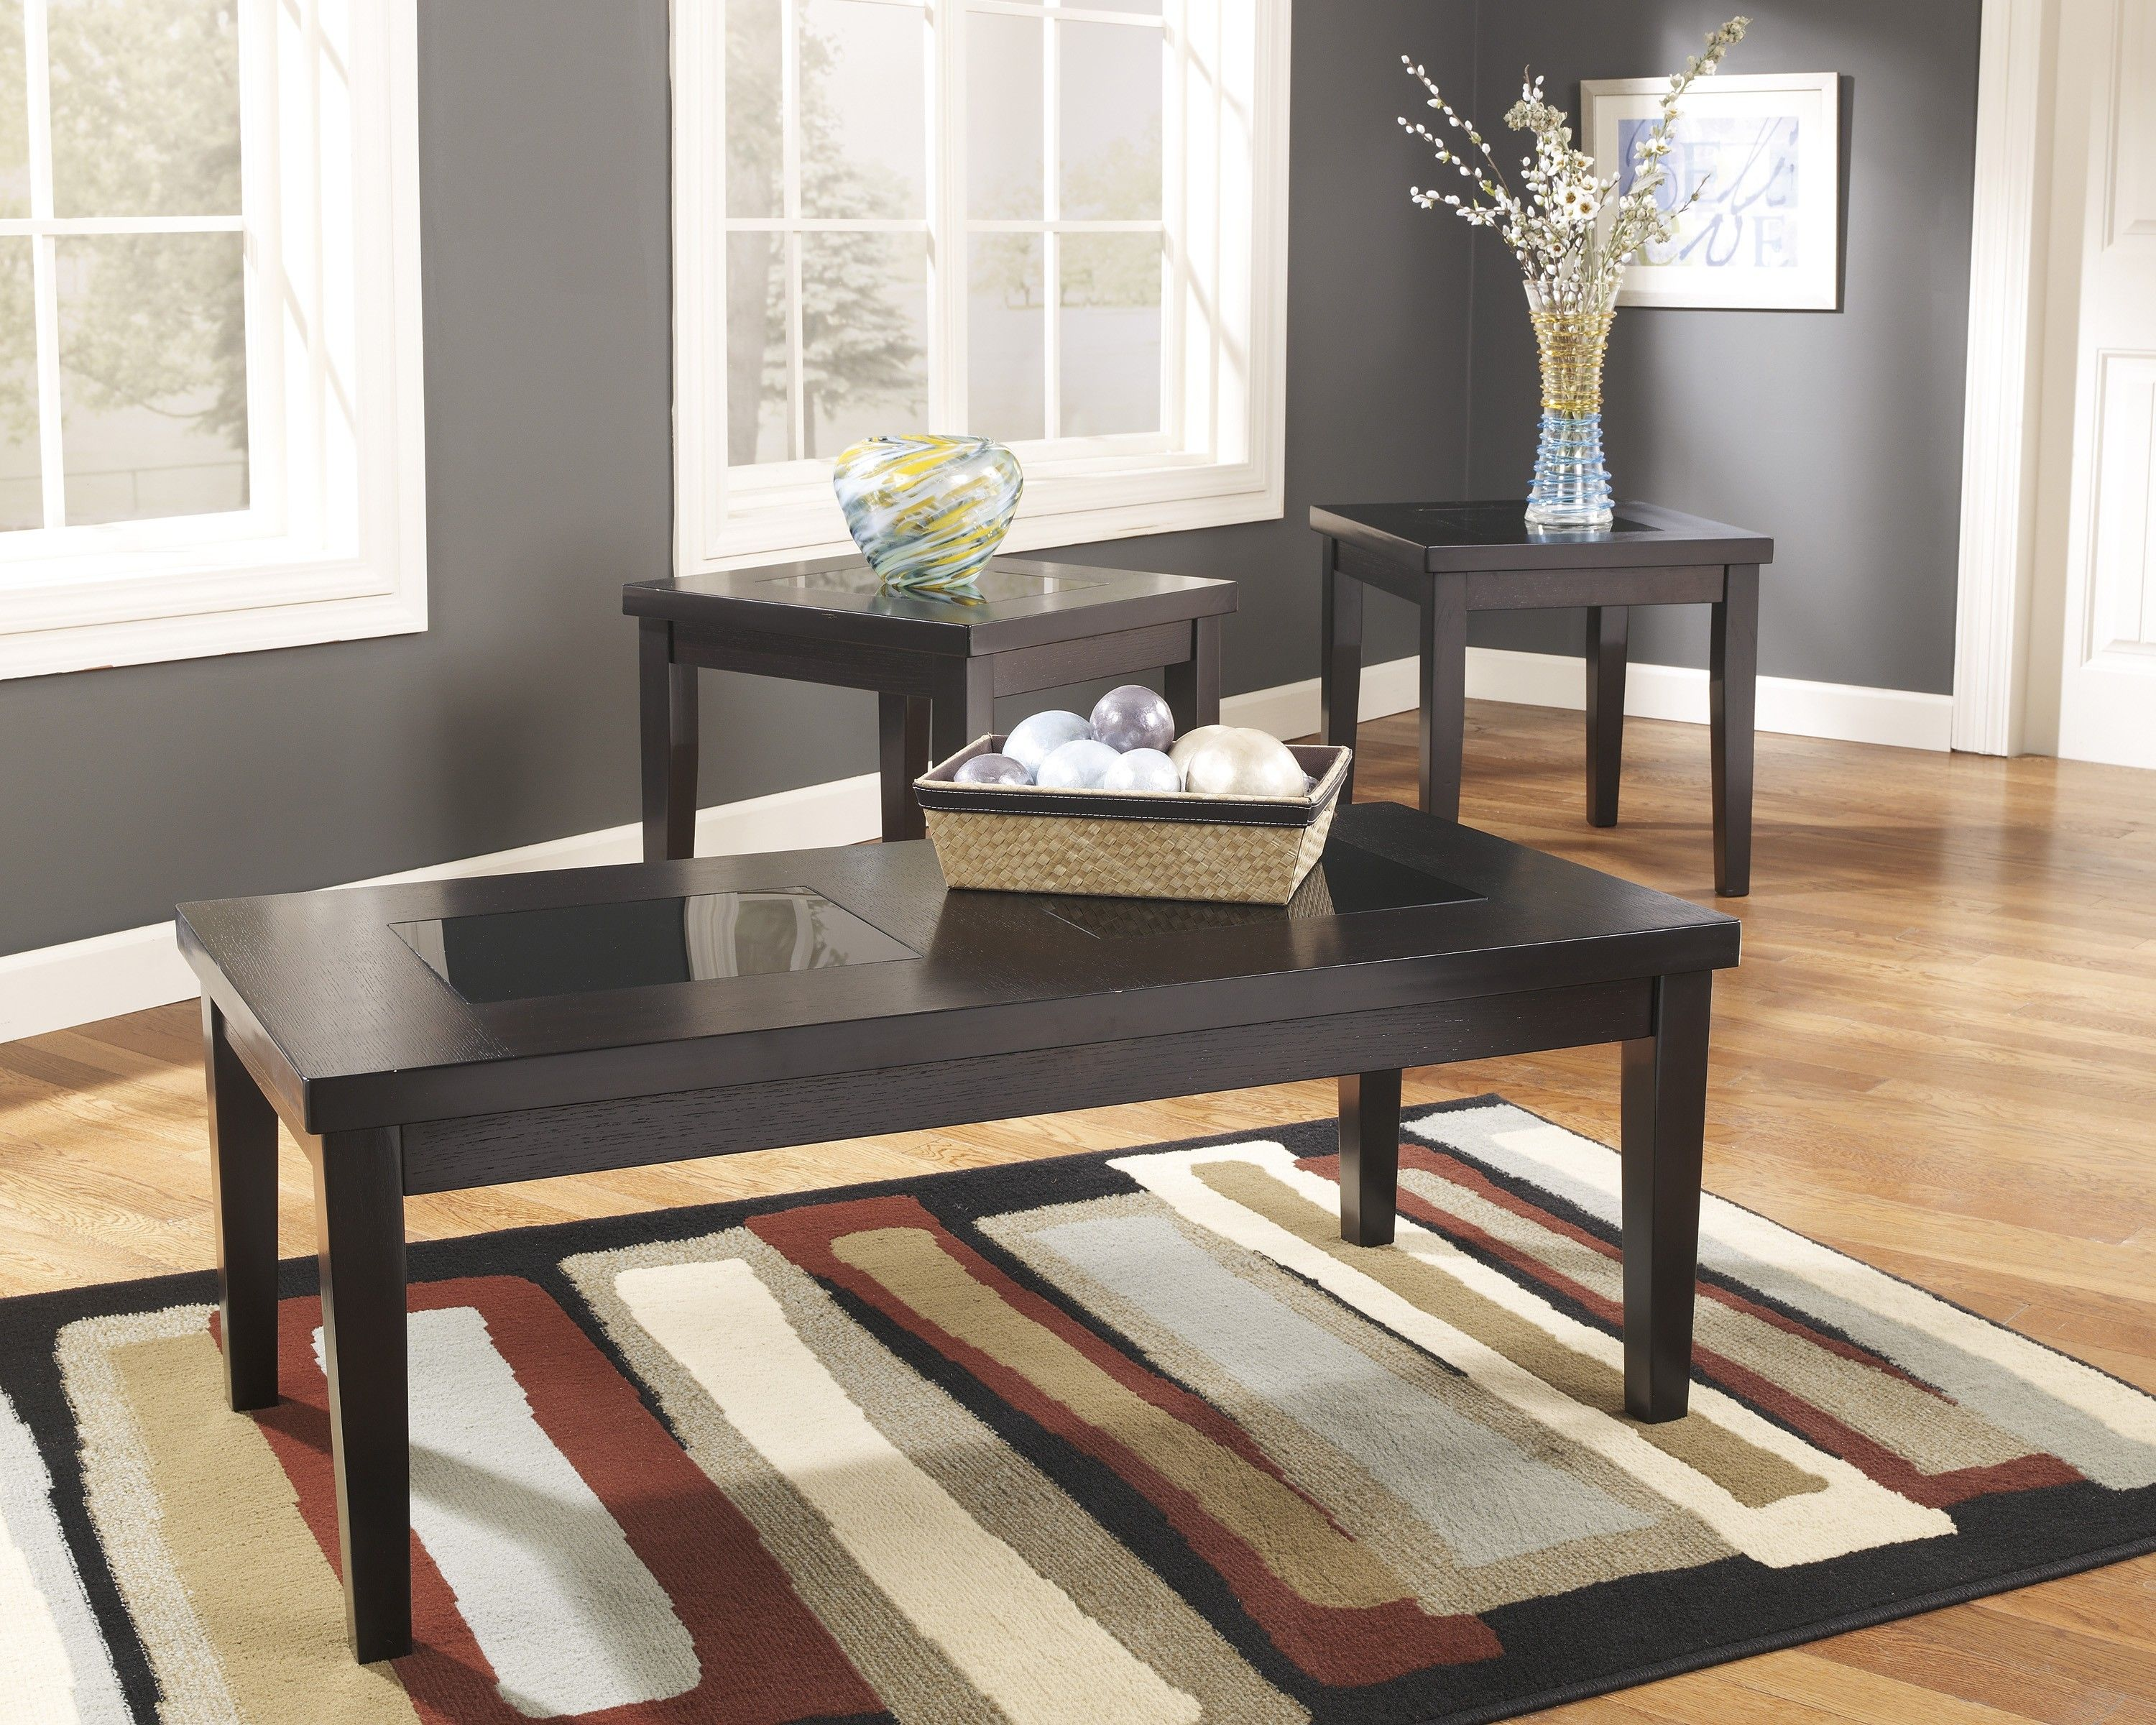 Awesome Fresh Ashley Furniture Living Room Tables 64 In Small Home Remodel Ideas With